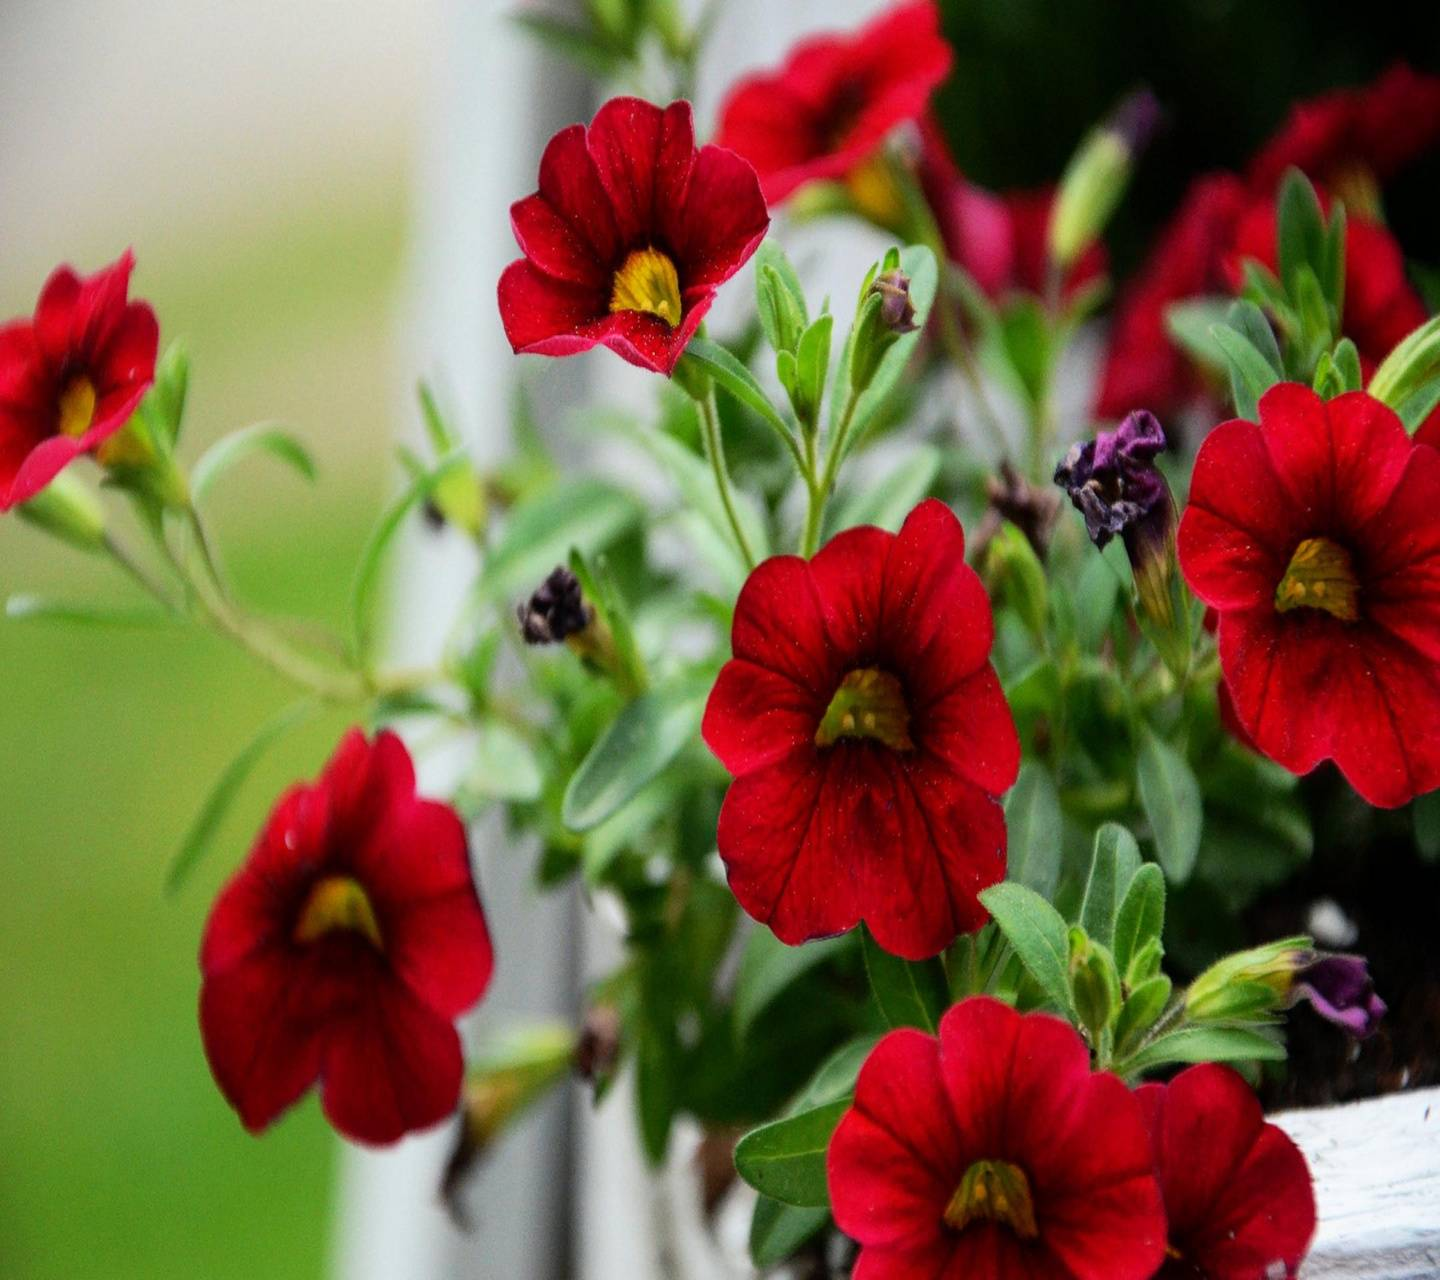 Red morning glory